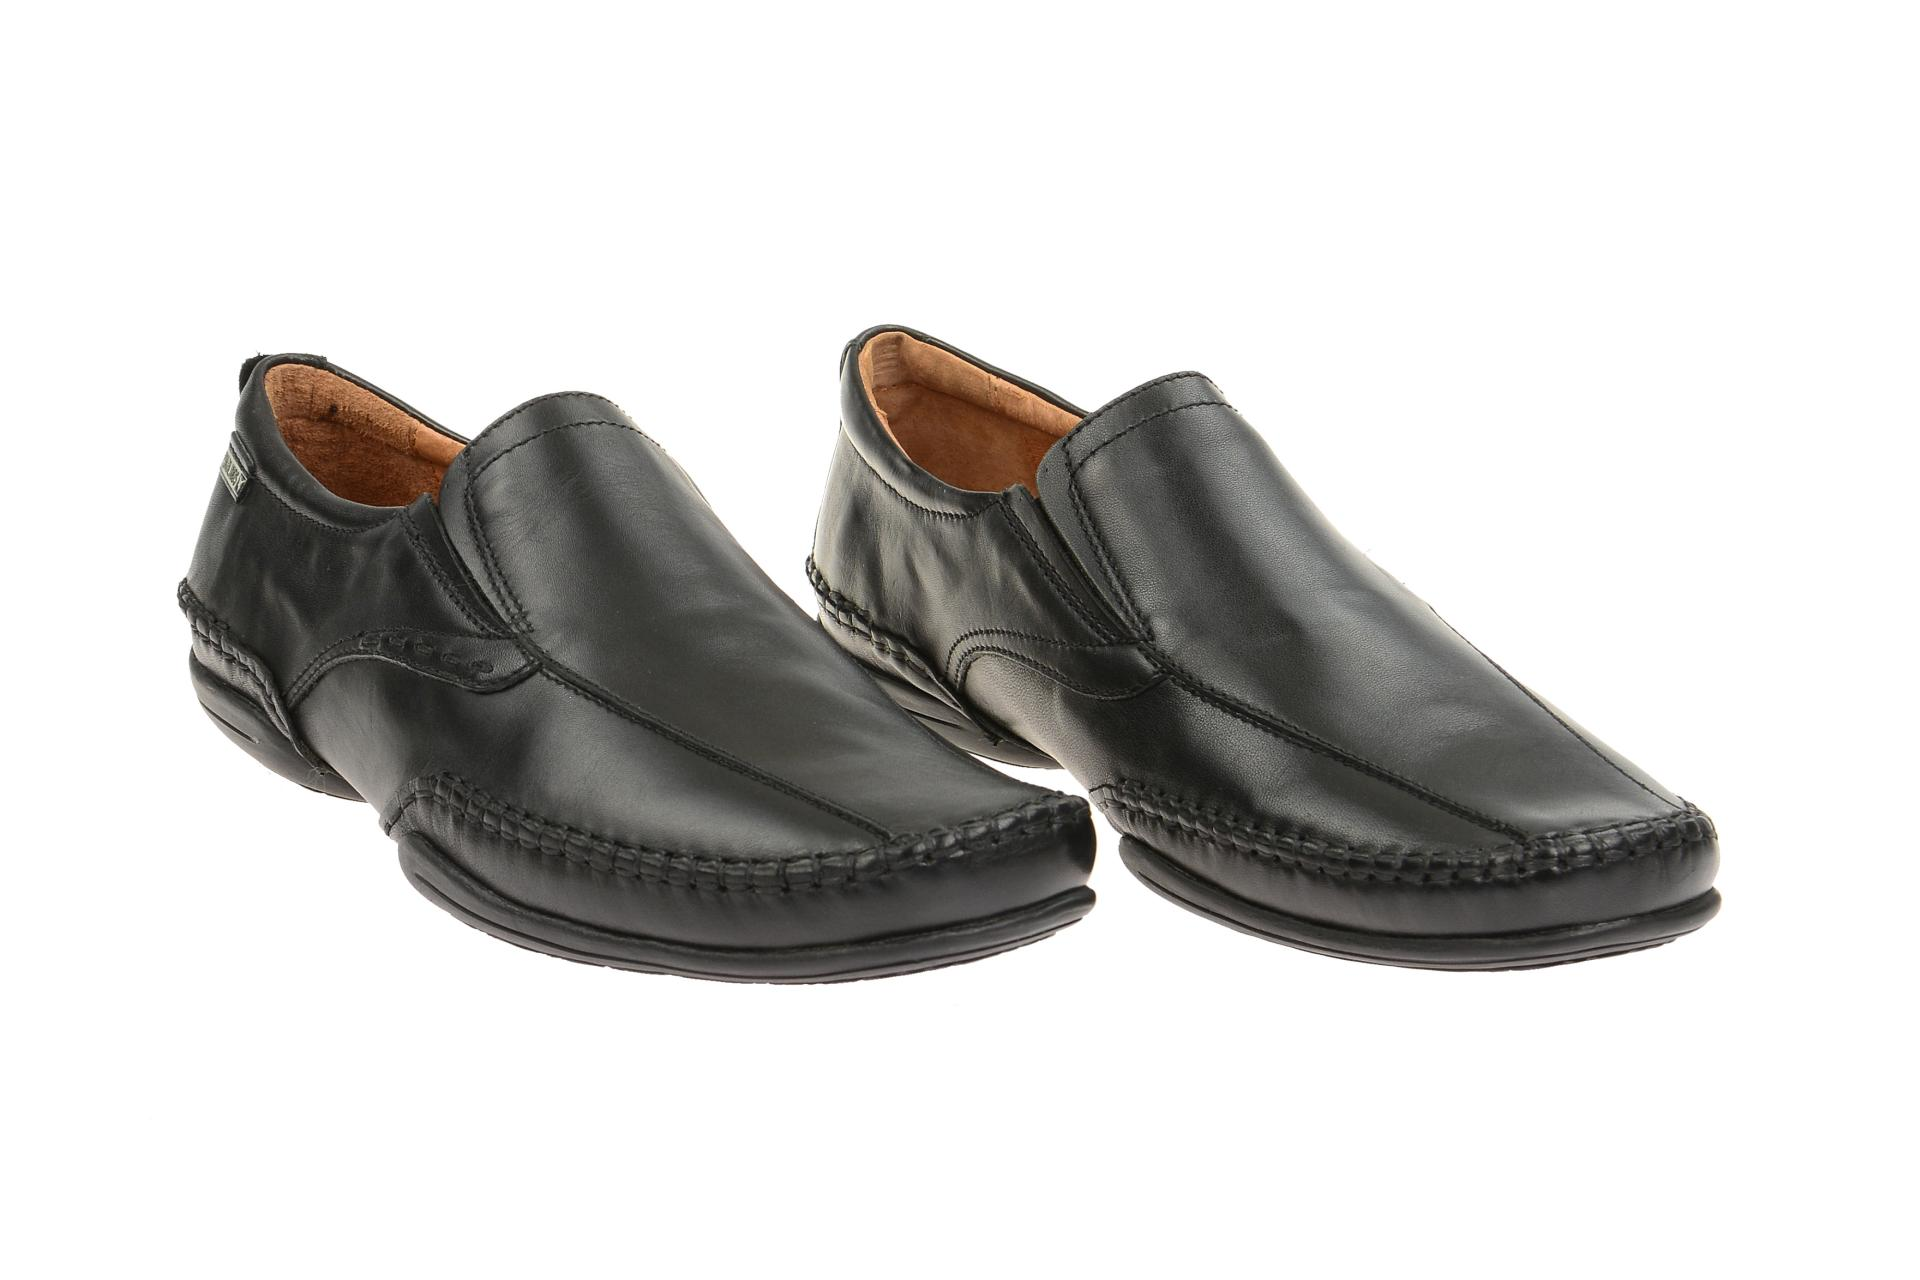 pikolinos puerto rico 03a 6222 shoes black loafers ebay. Black Bedroom Furniture Sets. Home Design Ideas